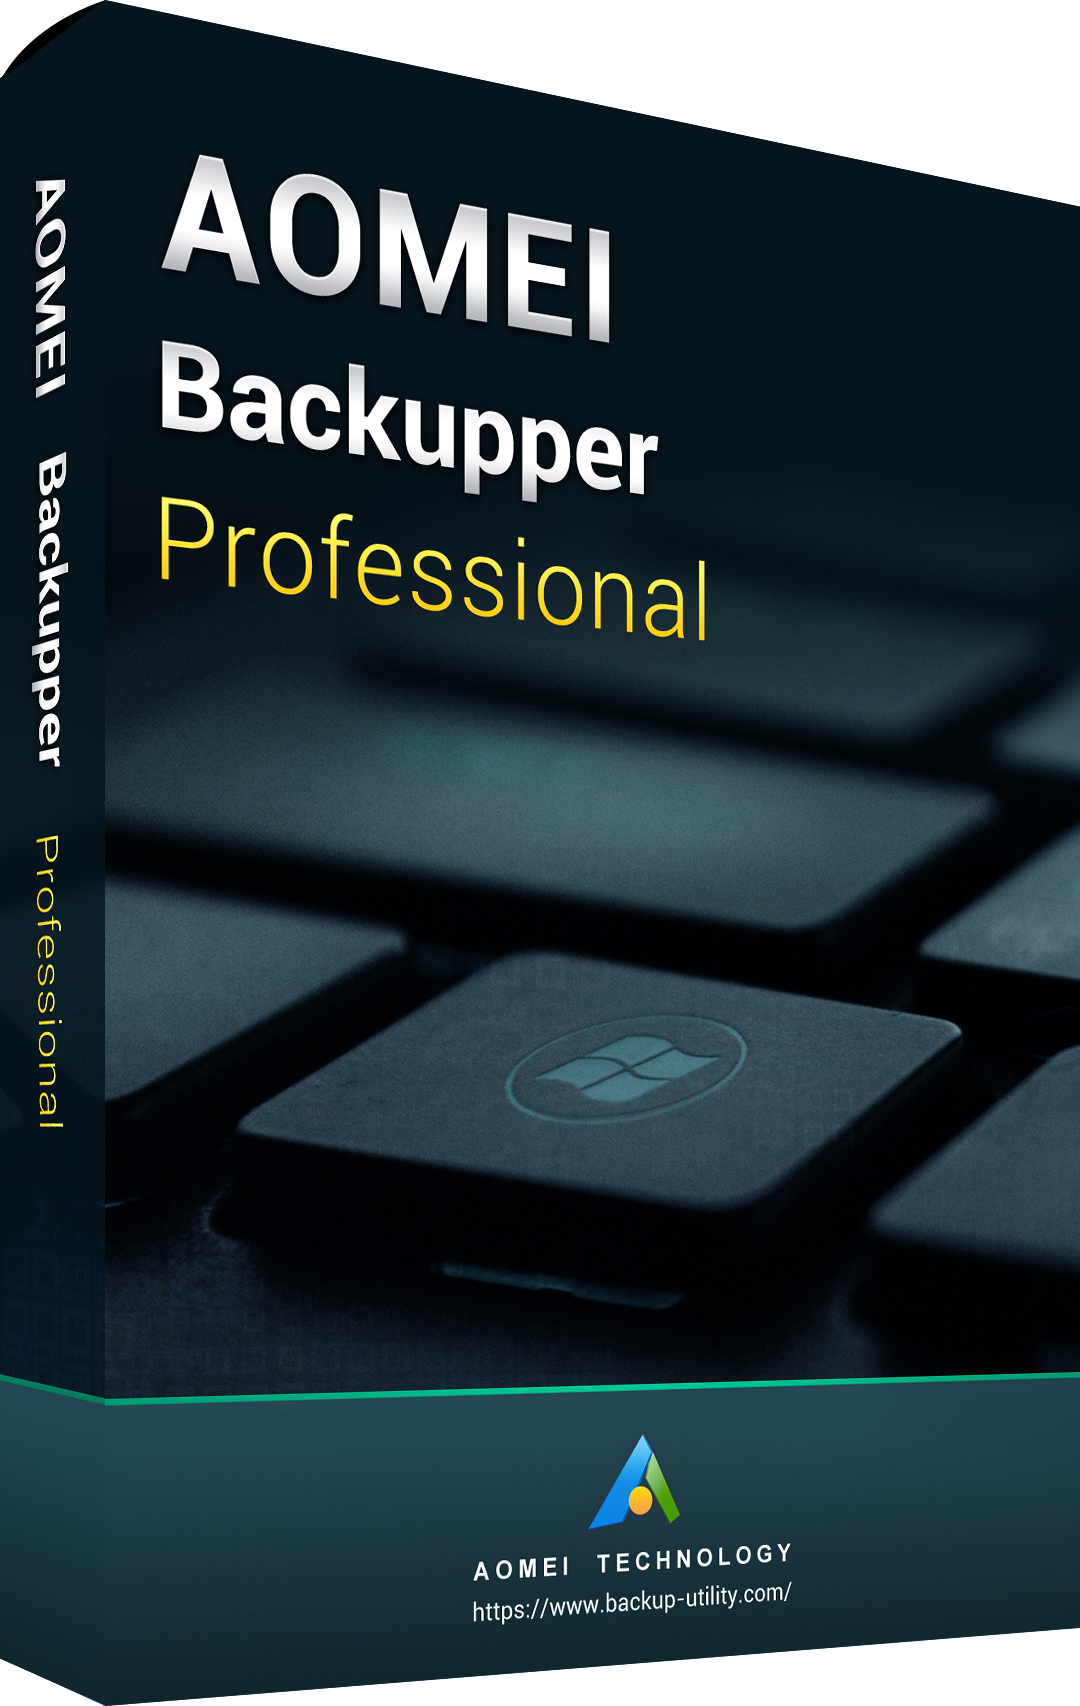 AOMEI Backupper Professional 5.0 Key Global